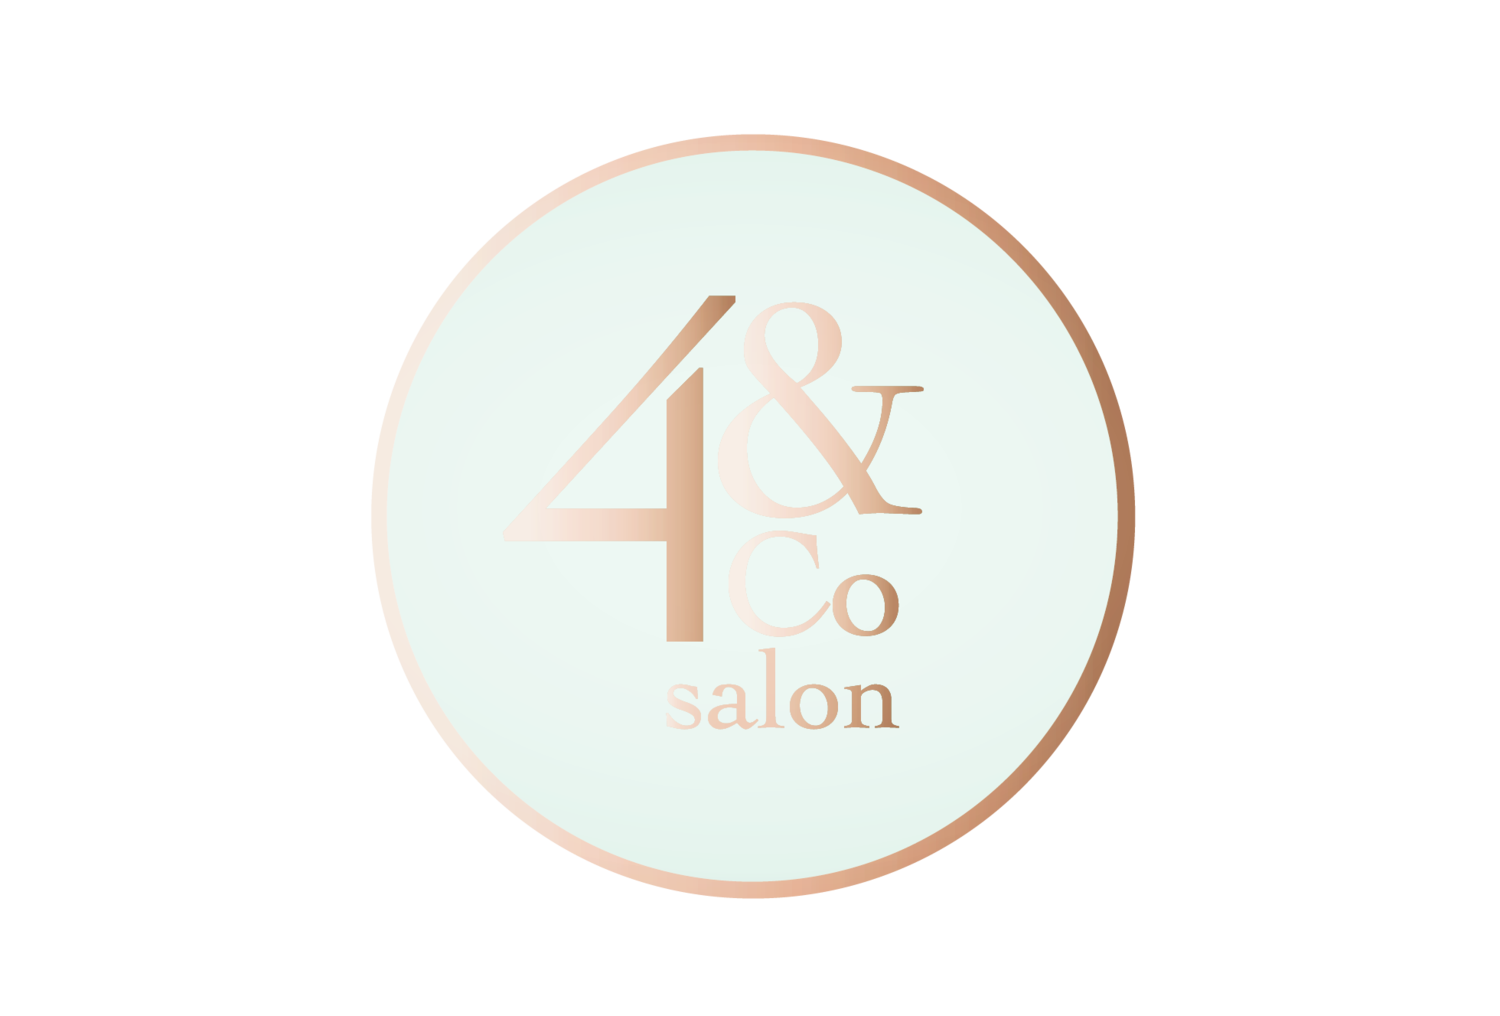 4&Co. Salon